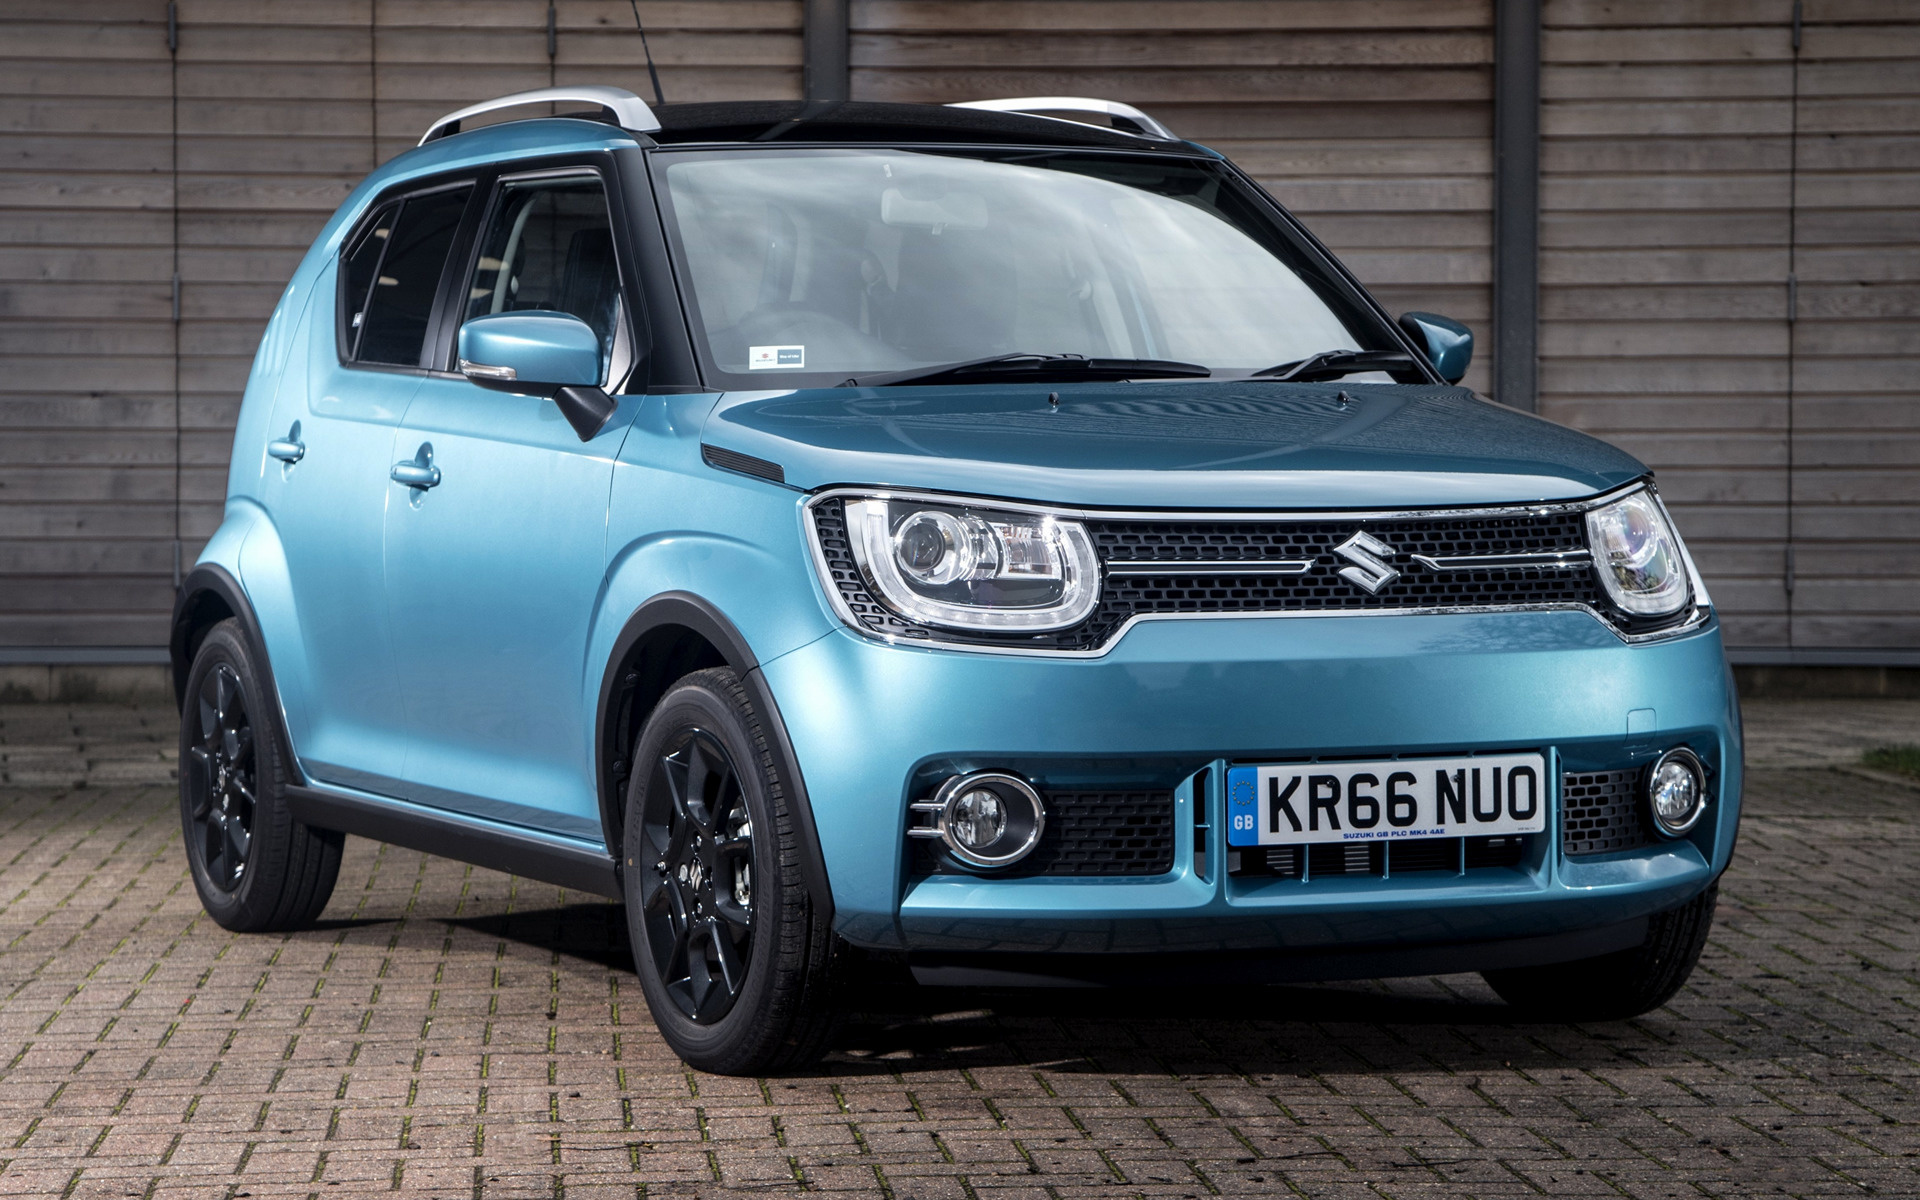 suzuki ignis 2016 uk wallpapers and hd images car pixel. Black Bedroom Furniture Sets. Home Design Ideas